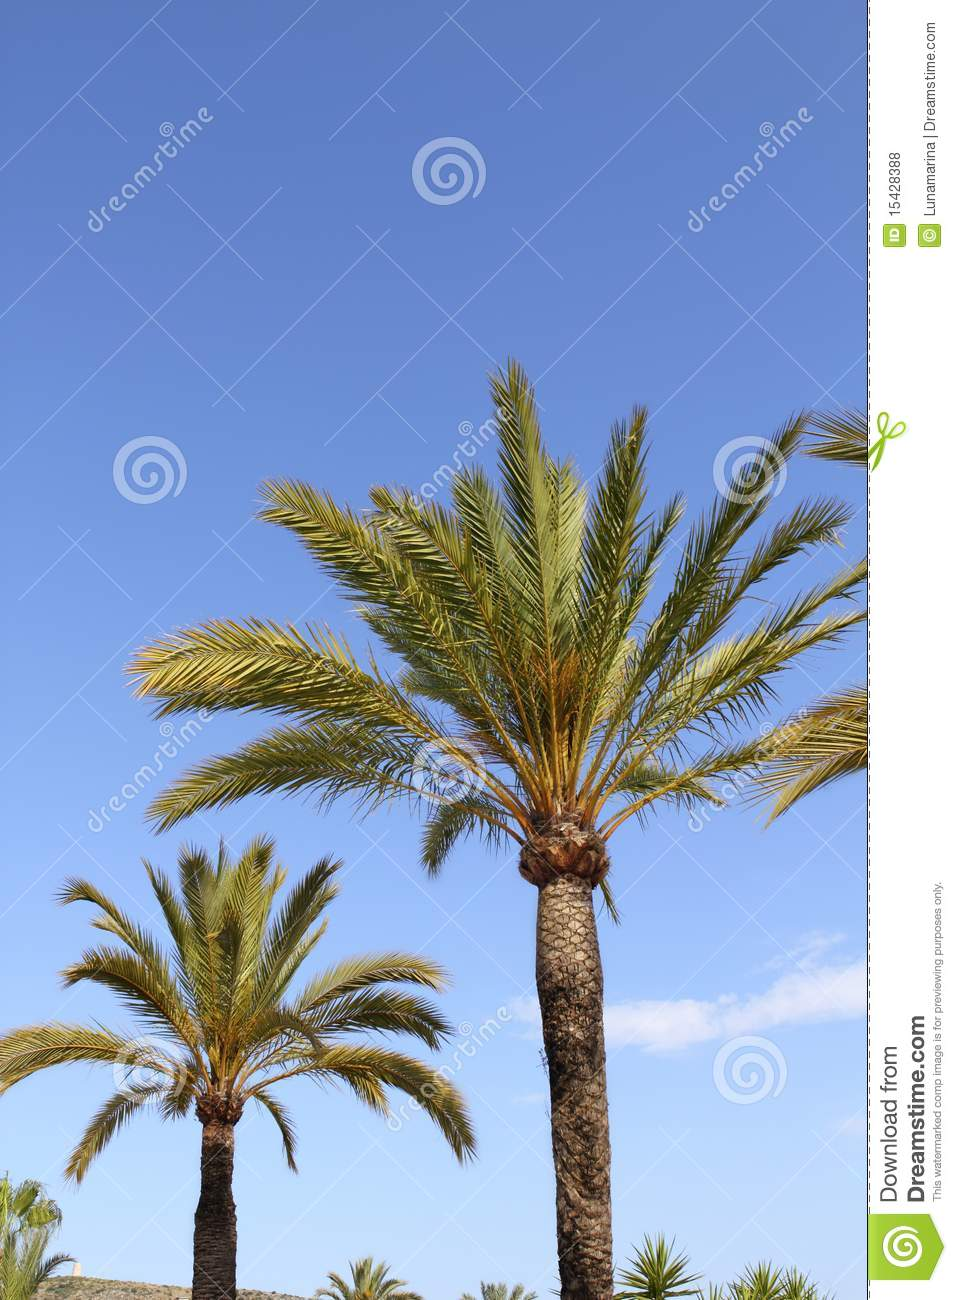 phoenix canariensis palm trees blue sky royalty free stock. Black Bedroom Furniture Sets. Home Design Ideas